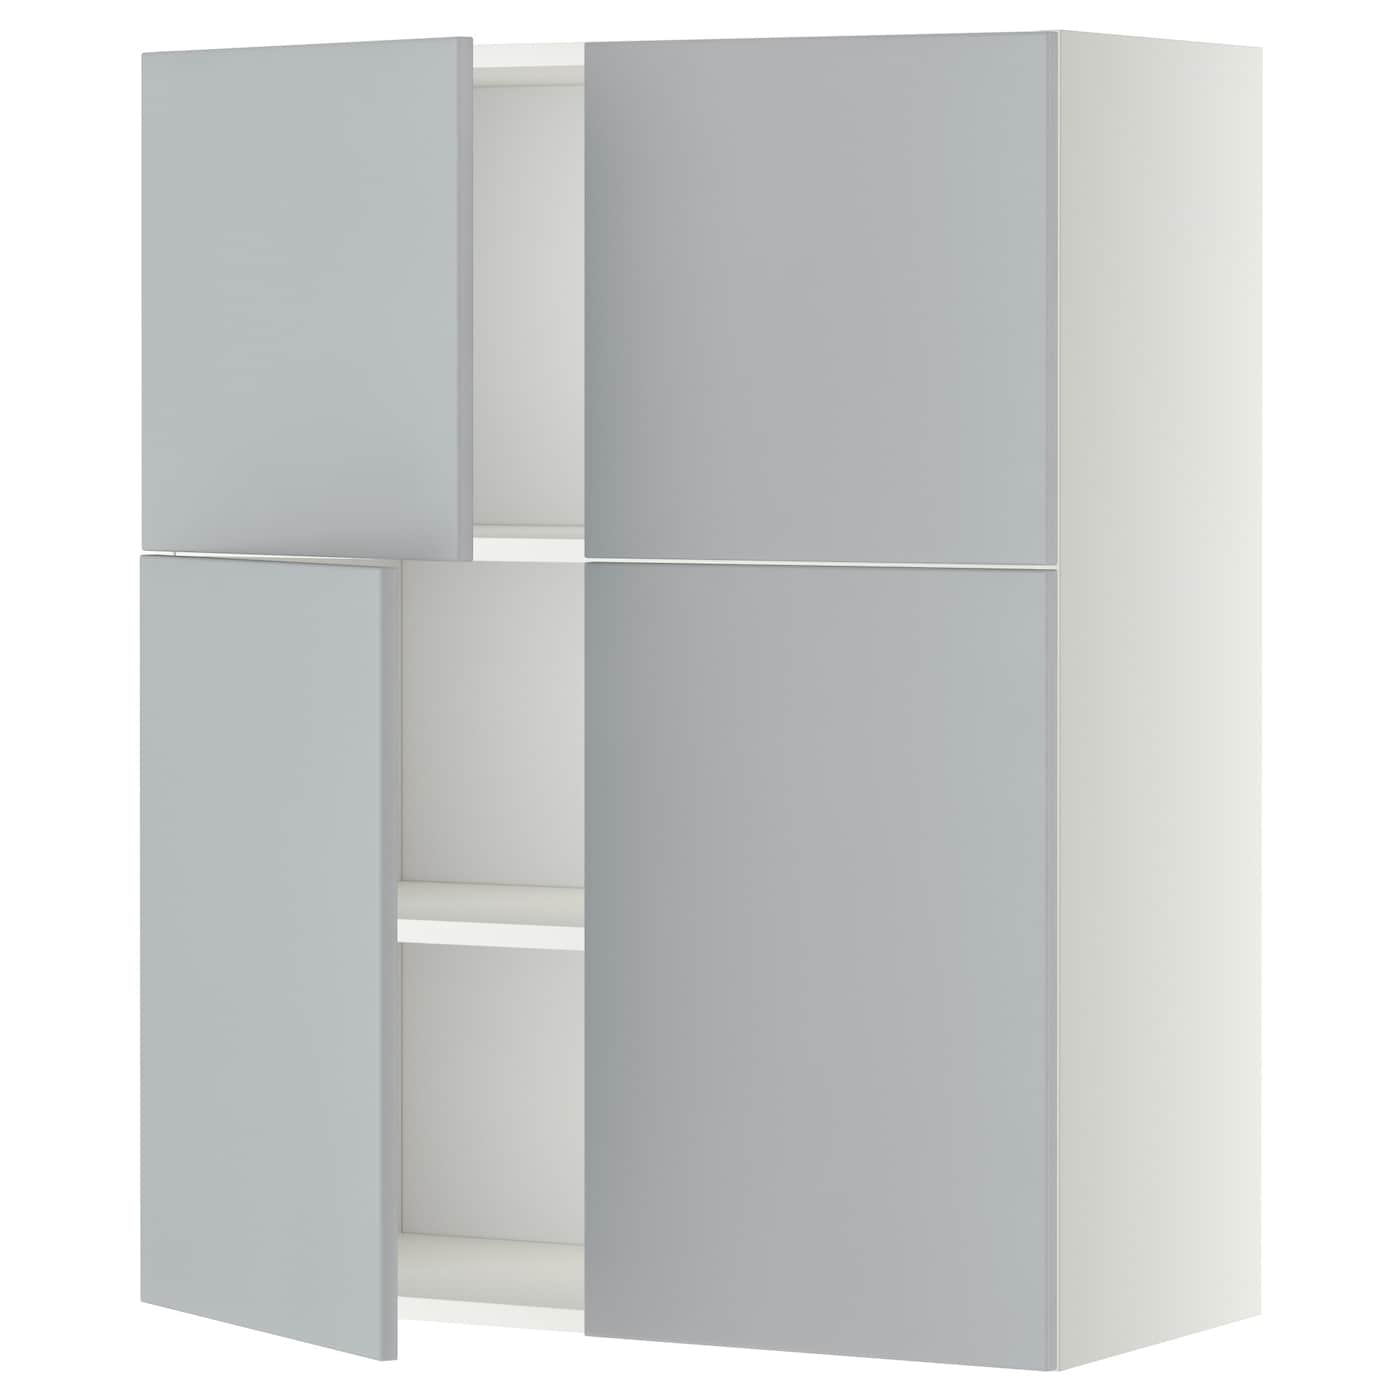 METOD Wall cabinet with shelves 4 doors White veddinge grey 80x100